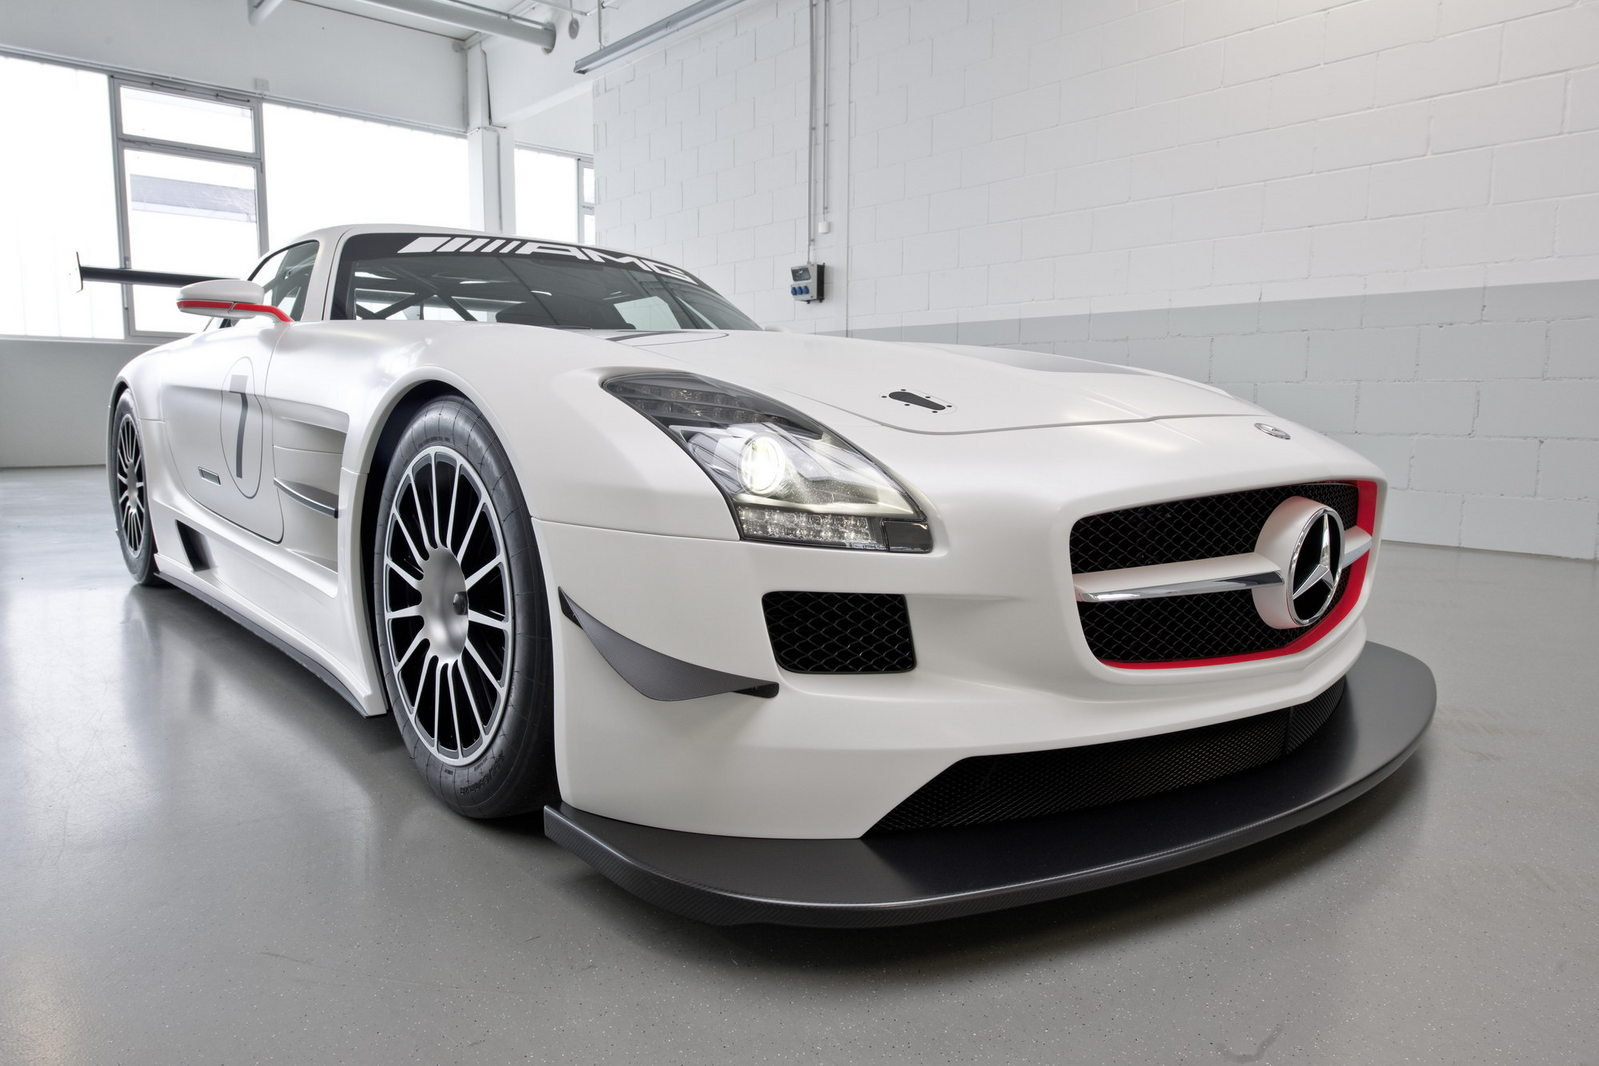 2011 mercedes sls amg gt3 picture 355745 car review. Black Bedroom Furniture Sets. Home Design Ideas